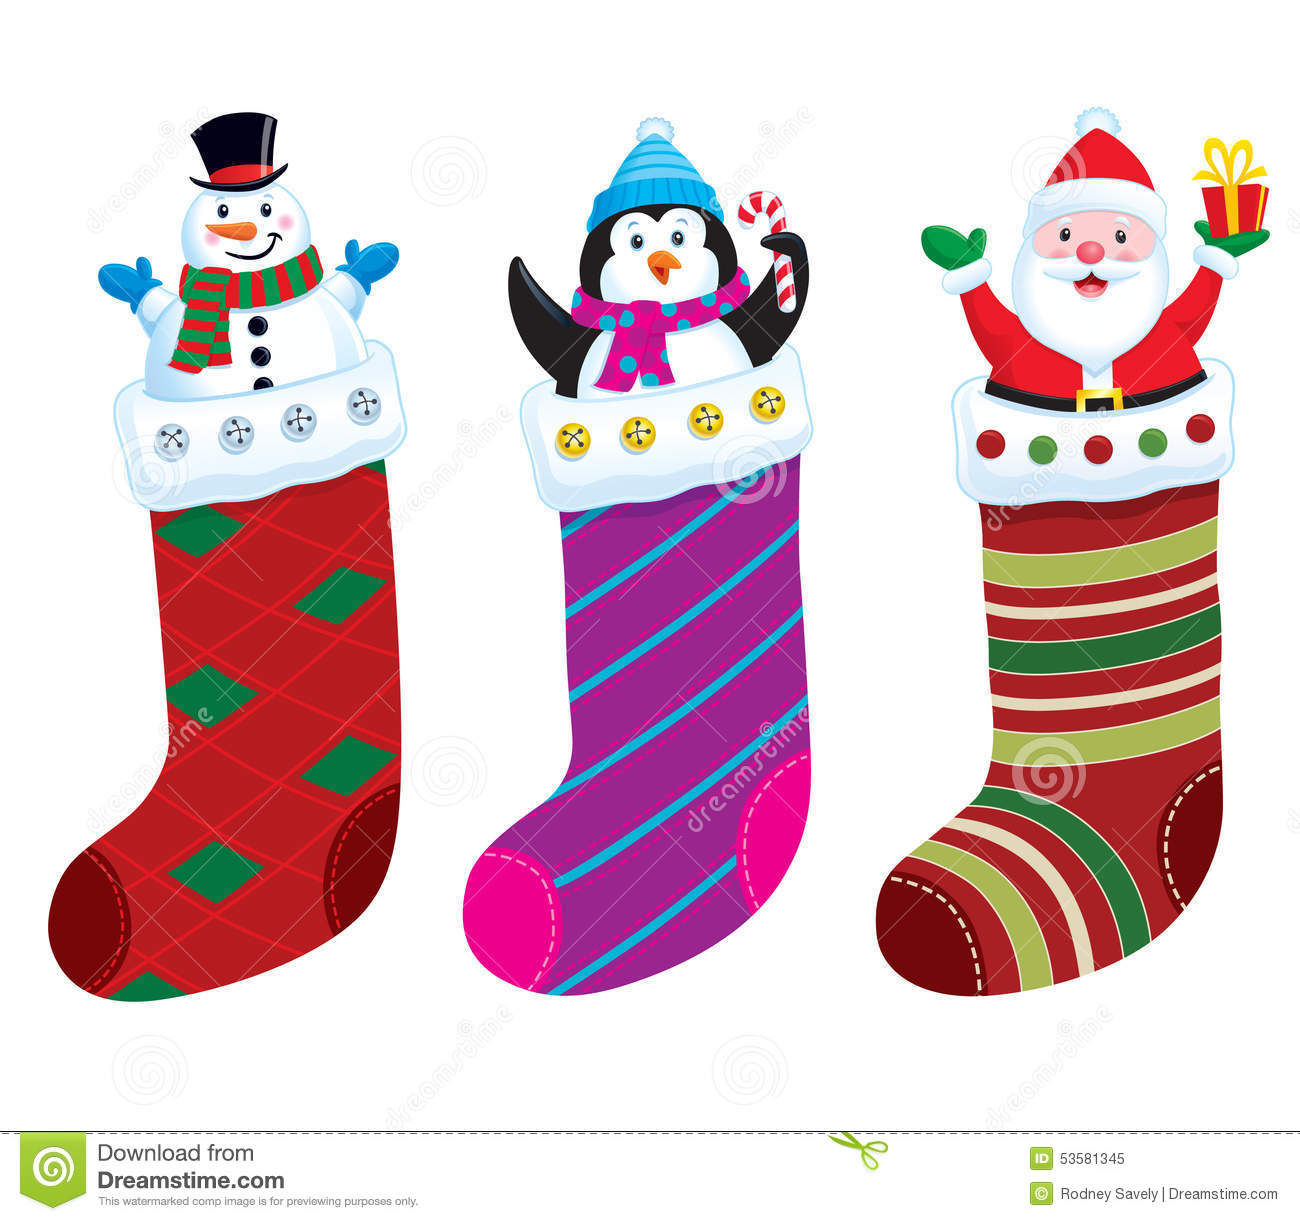 Christmas Stockings Cartoon.Christmas Stocking Characters Stock Illustration